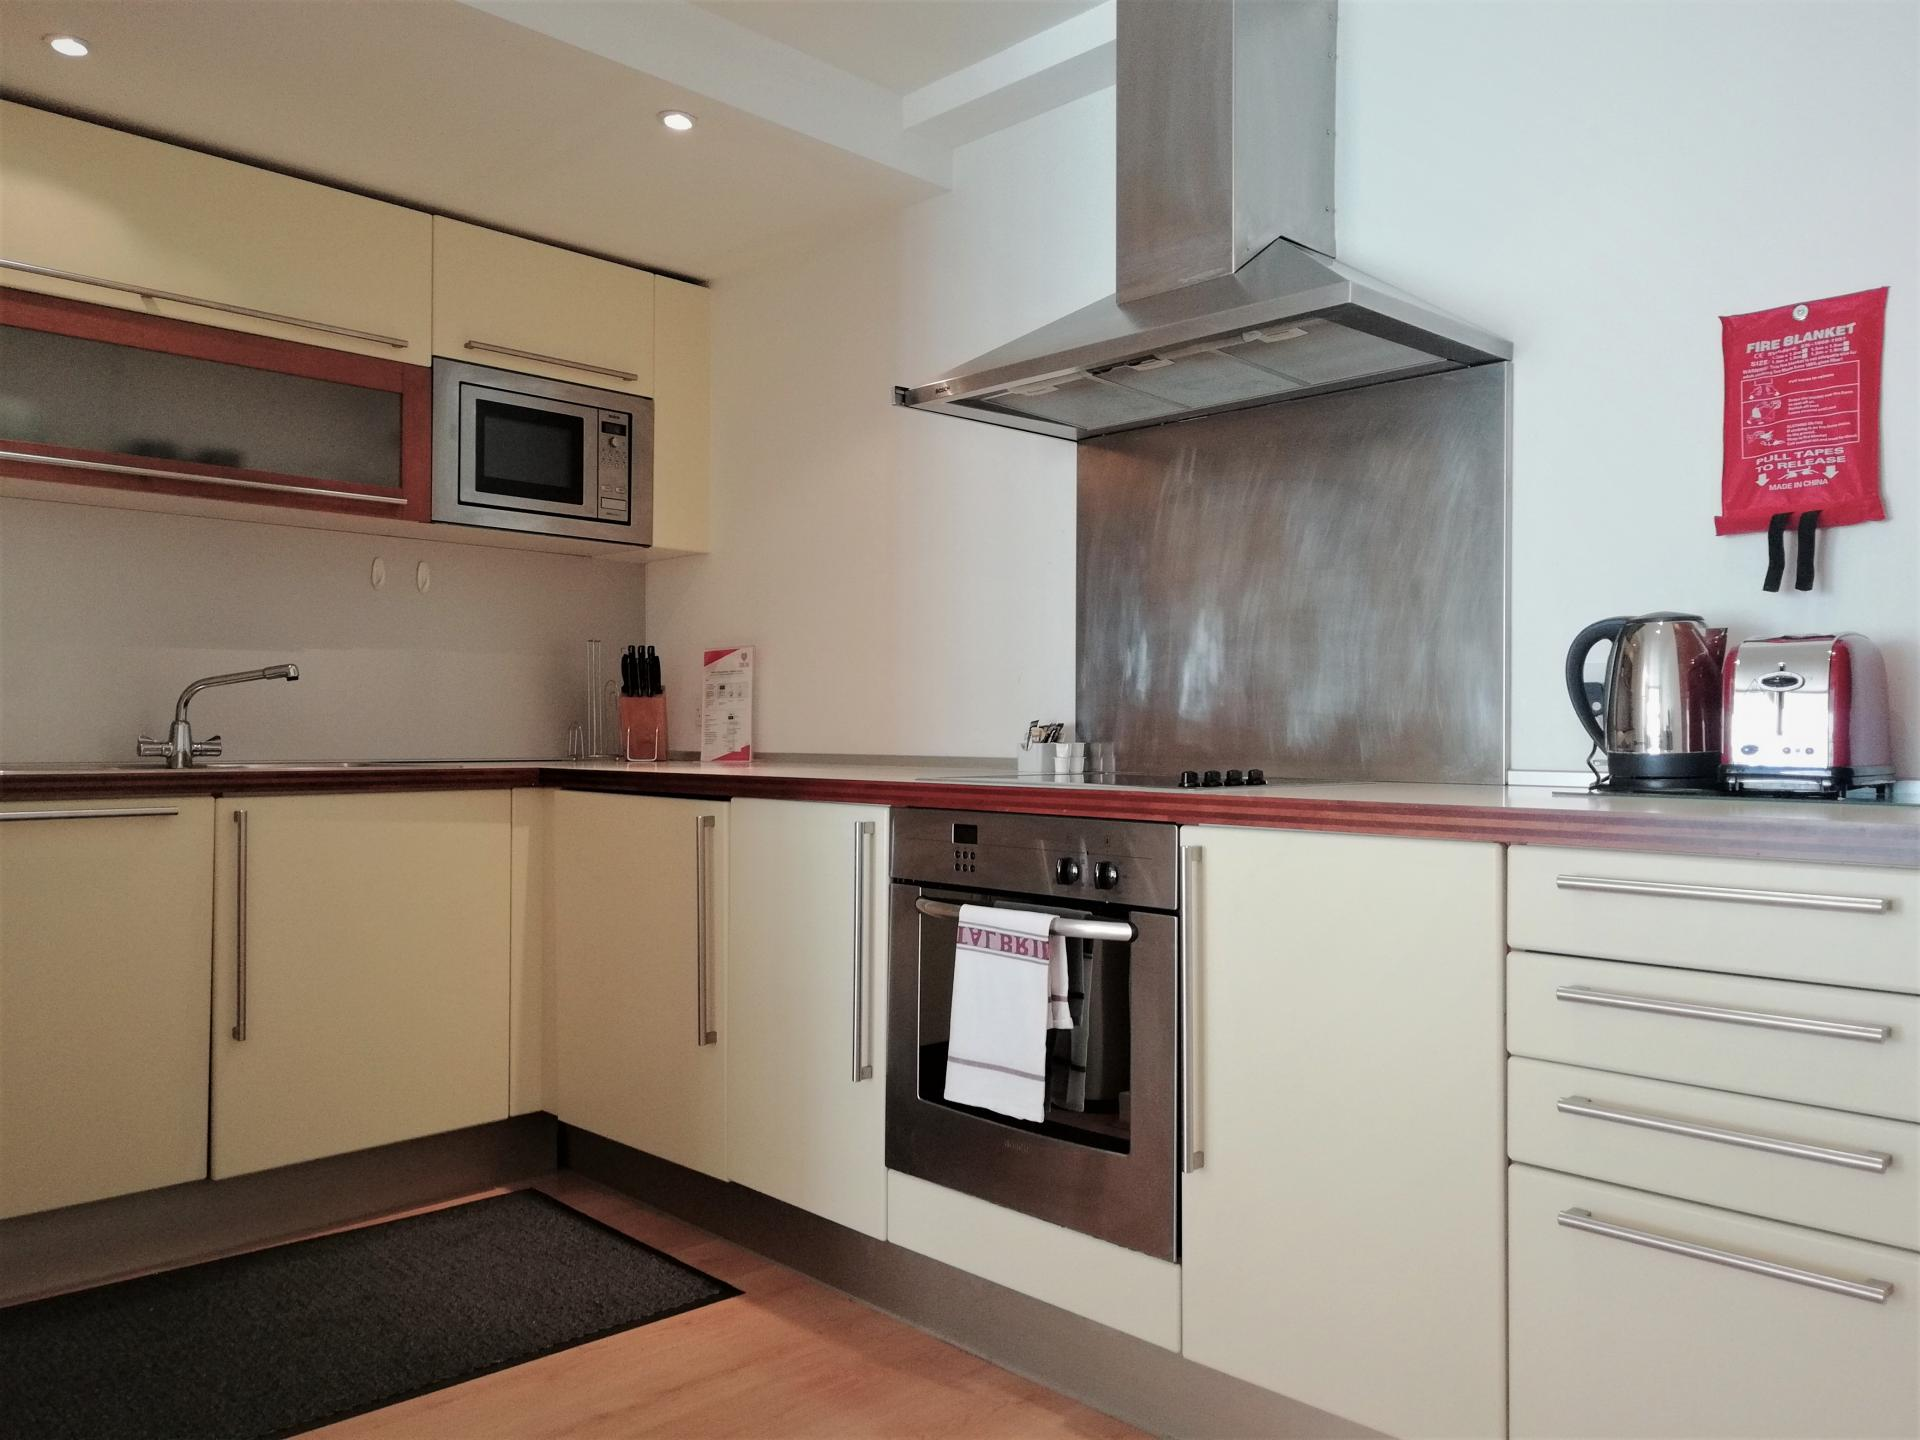 Kitchen at Still Life Old Street Deluxe, Old Street, London - Citybase Apartments